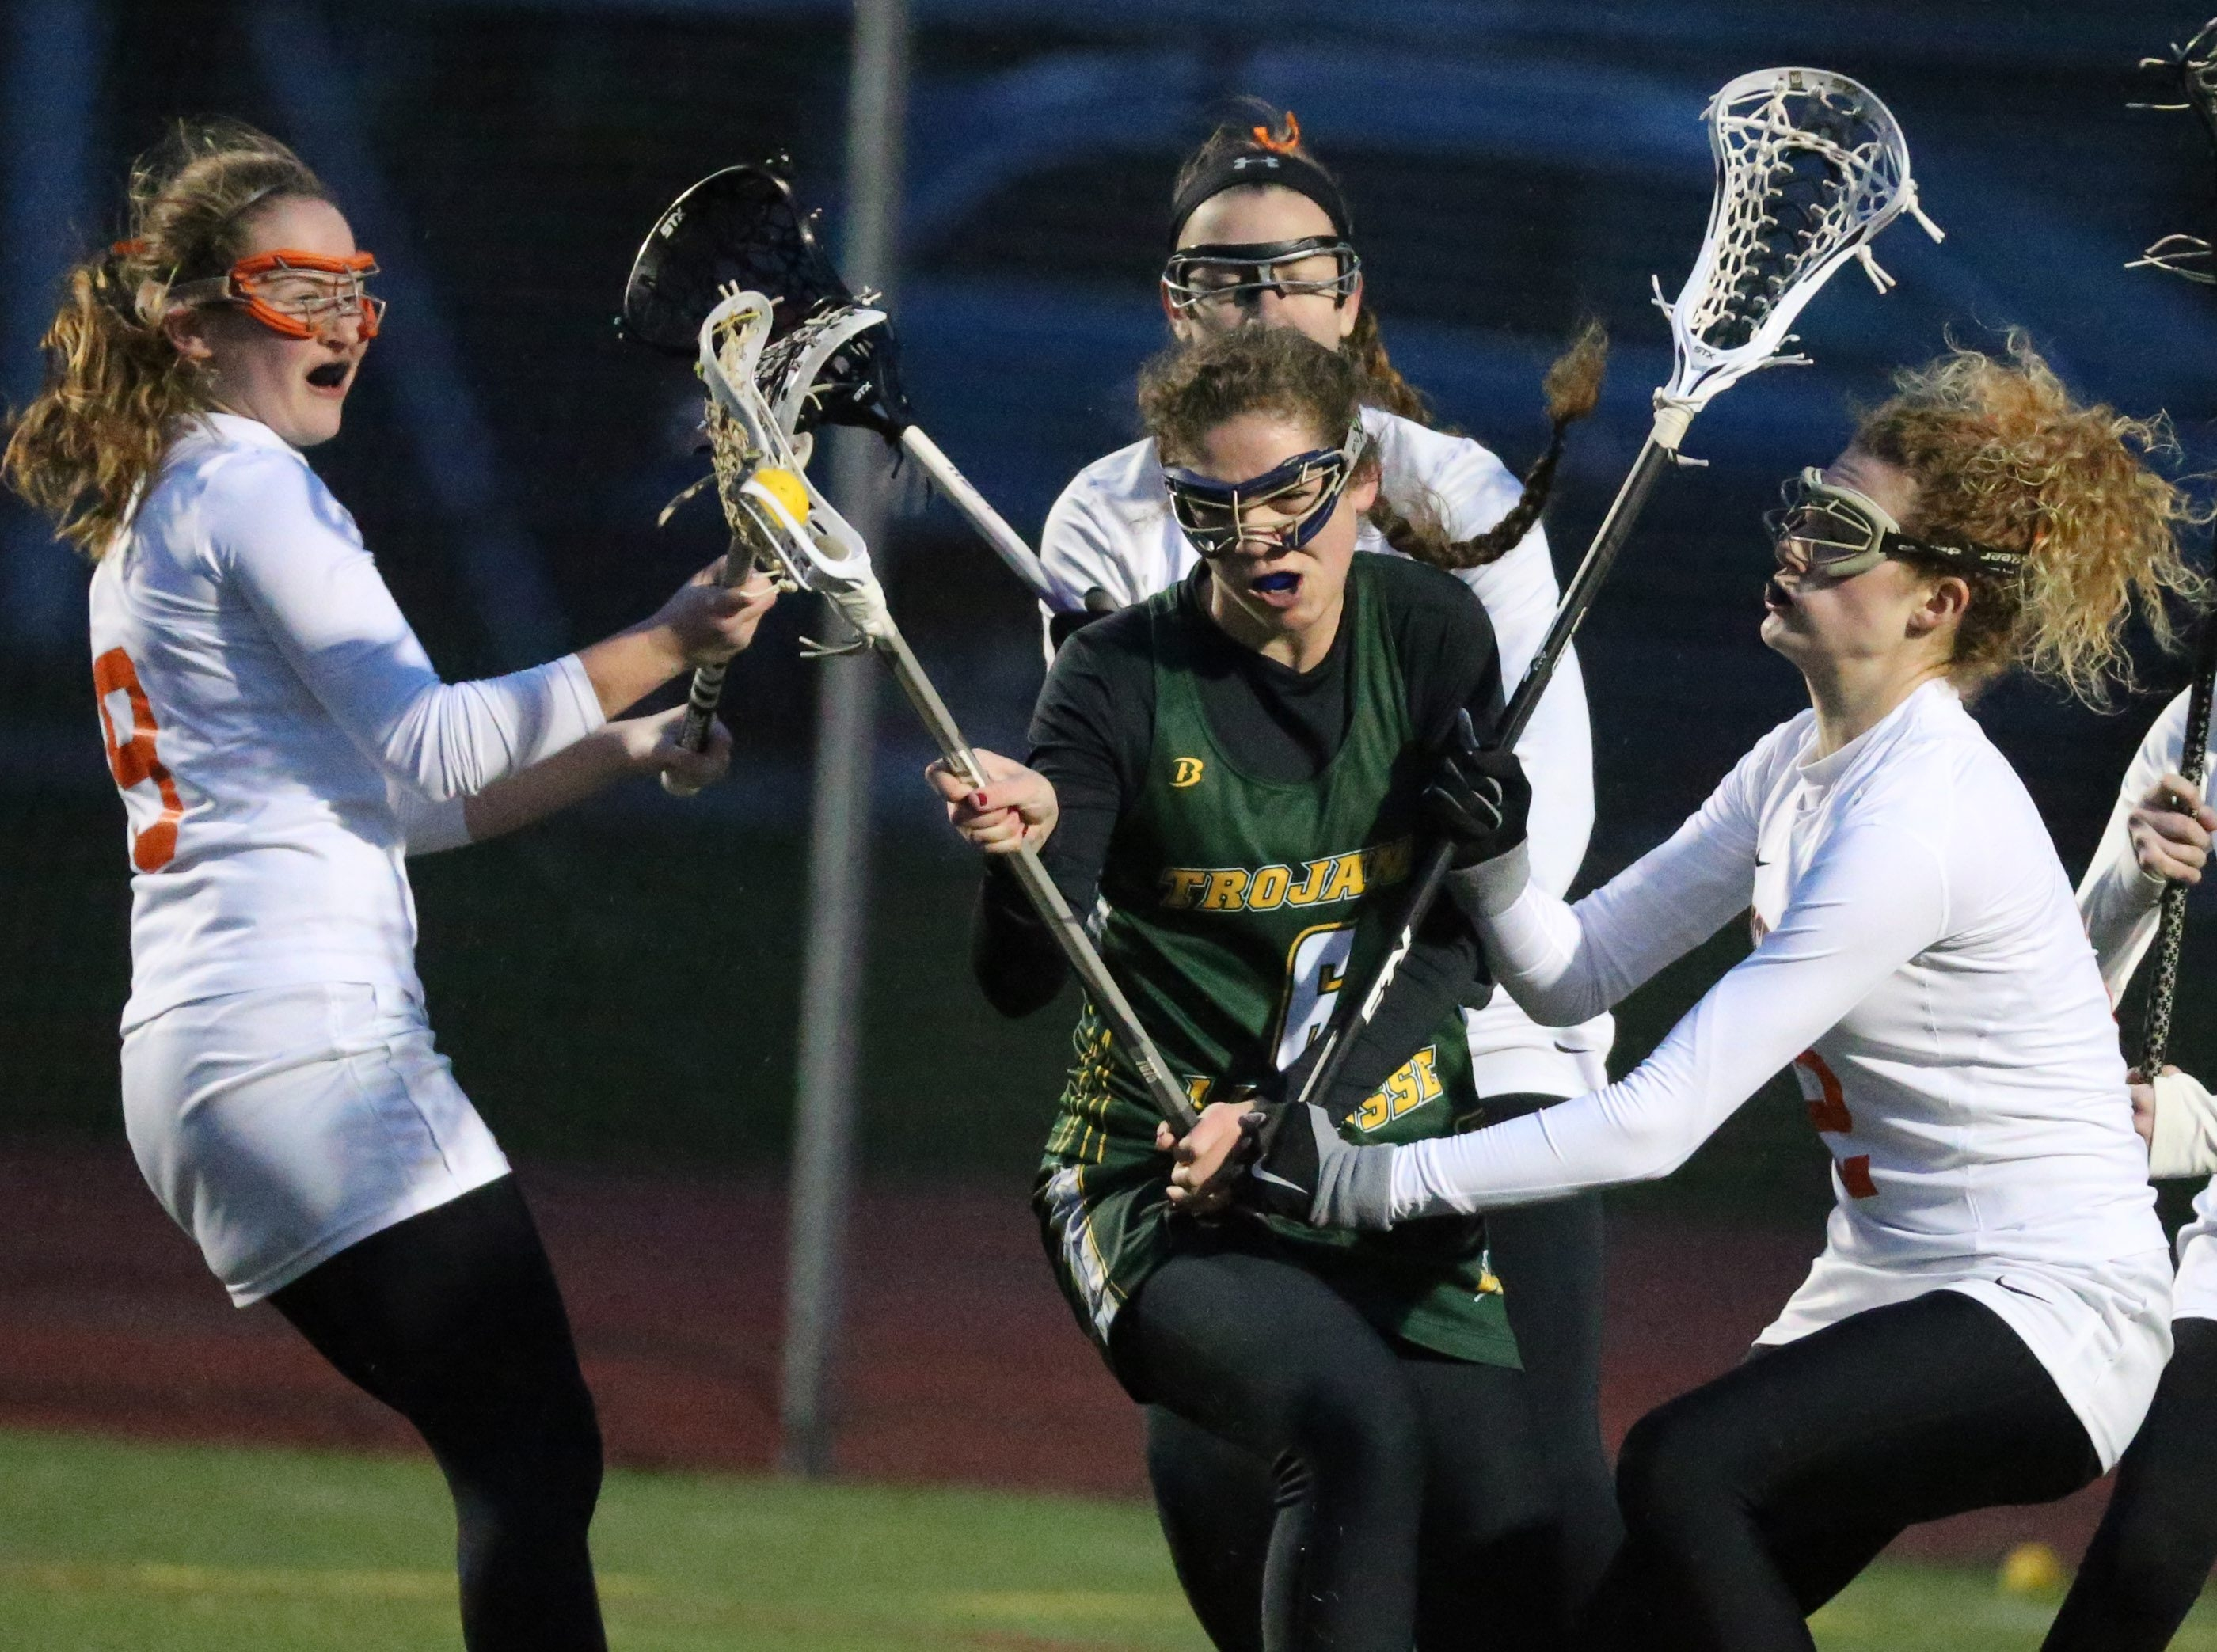 Amherst's defense battles West Seneca East's Laura Skrzypczyk in the first half of their lacrosse game Wednesday night. Amherst won, 14-4.